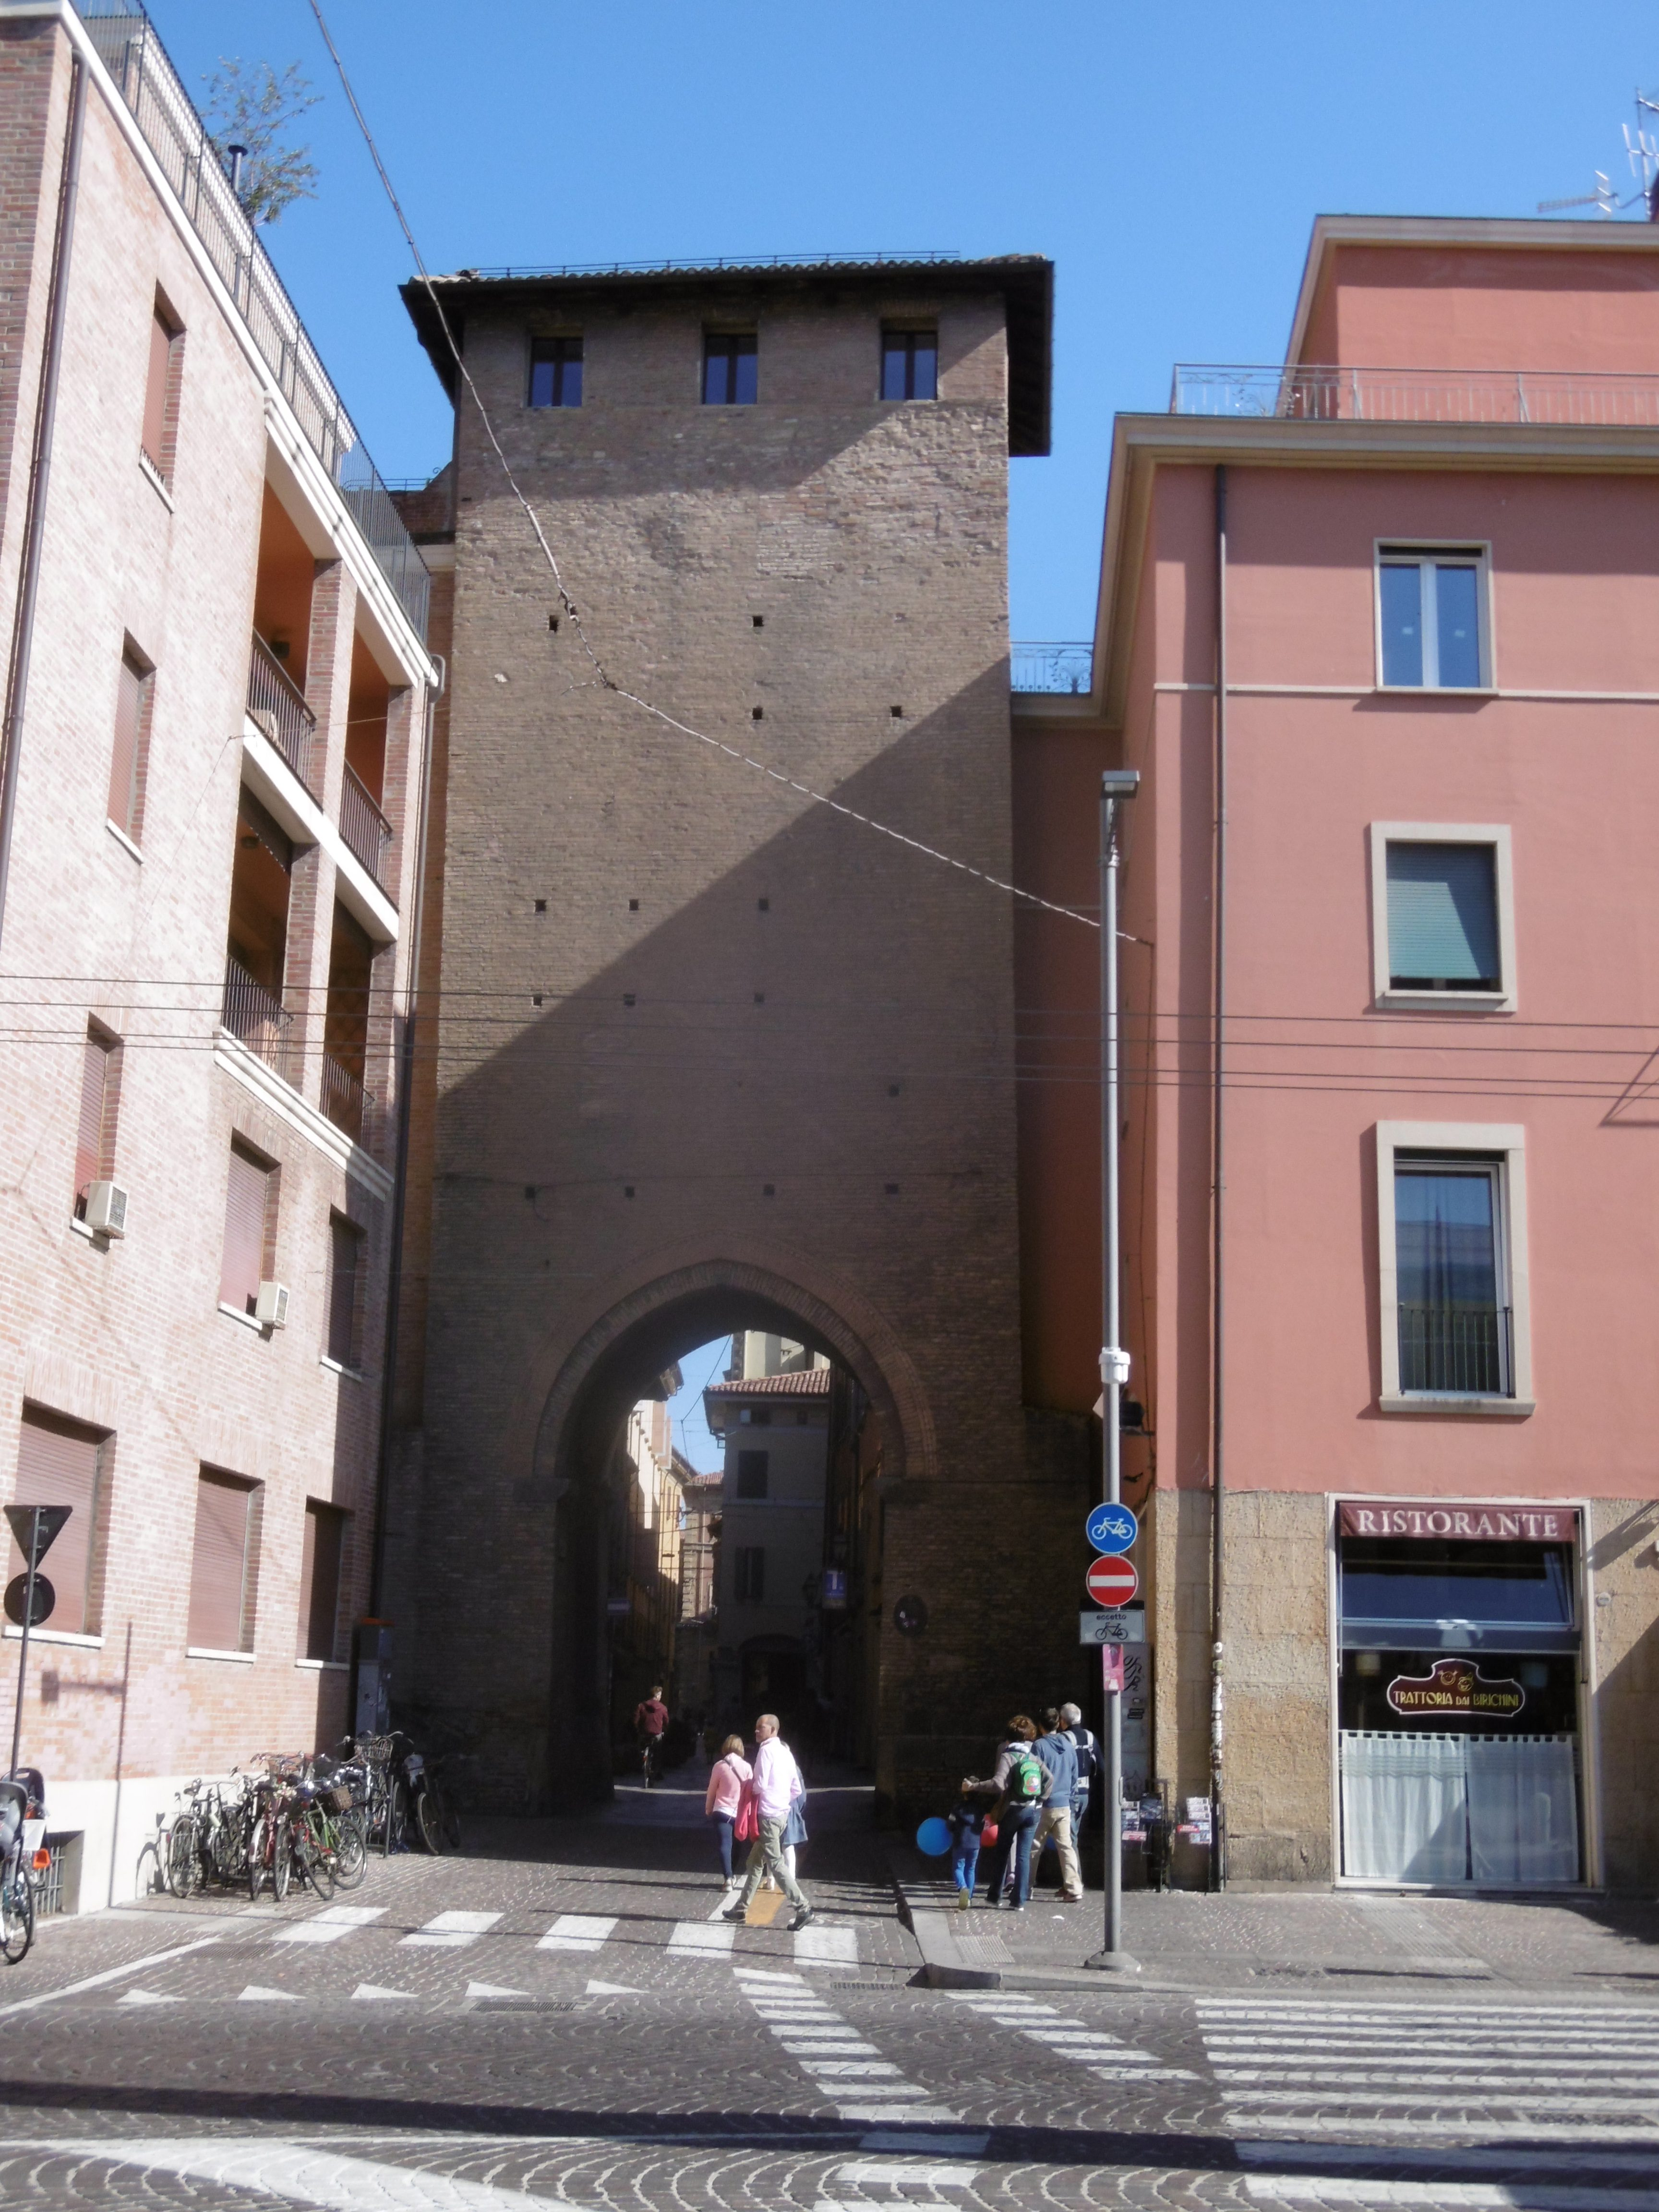 A gate tower six modern stories high with the gate passing through the ground floor